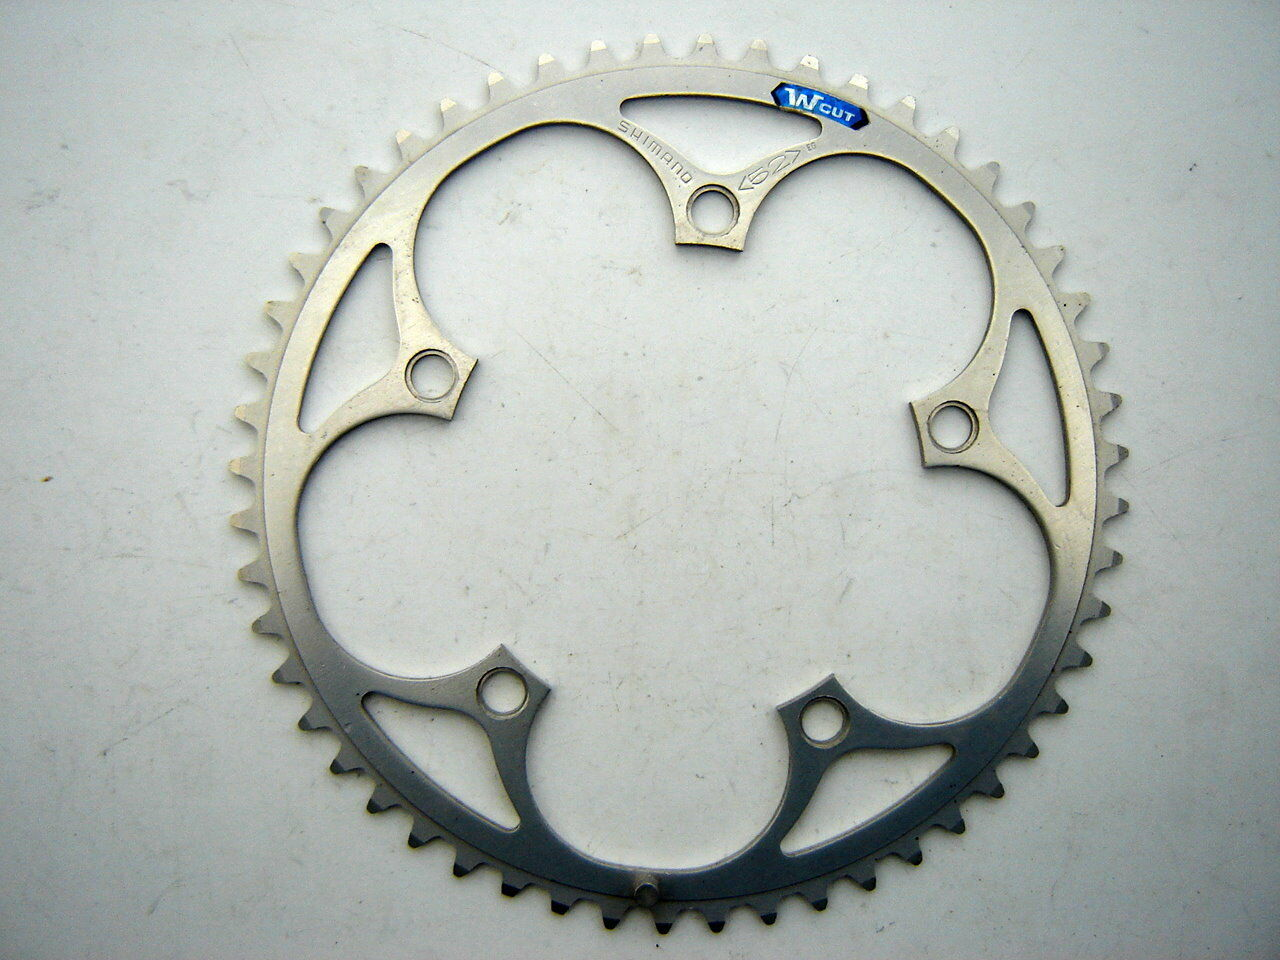 SHIMANO Wcut CHAINRING - 52 T - 130 BCD - 1980 - NOS